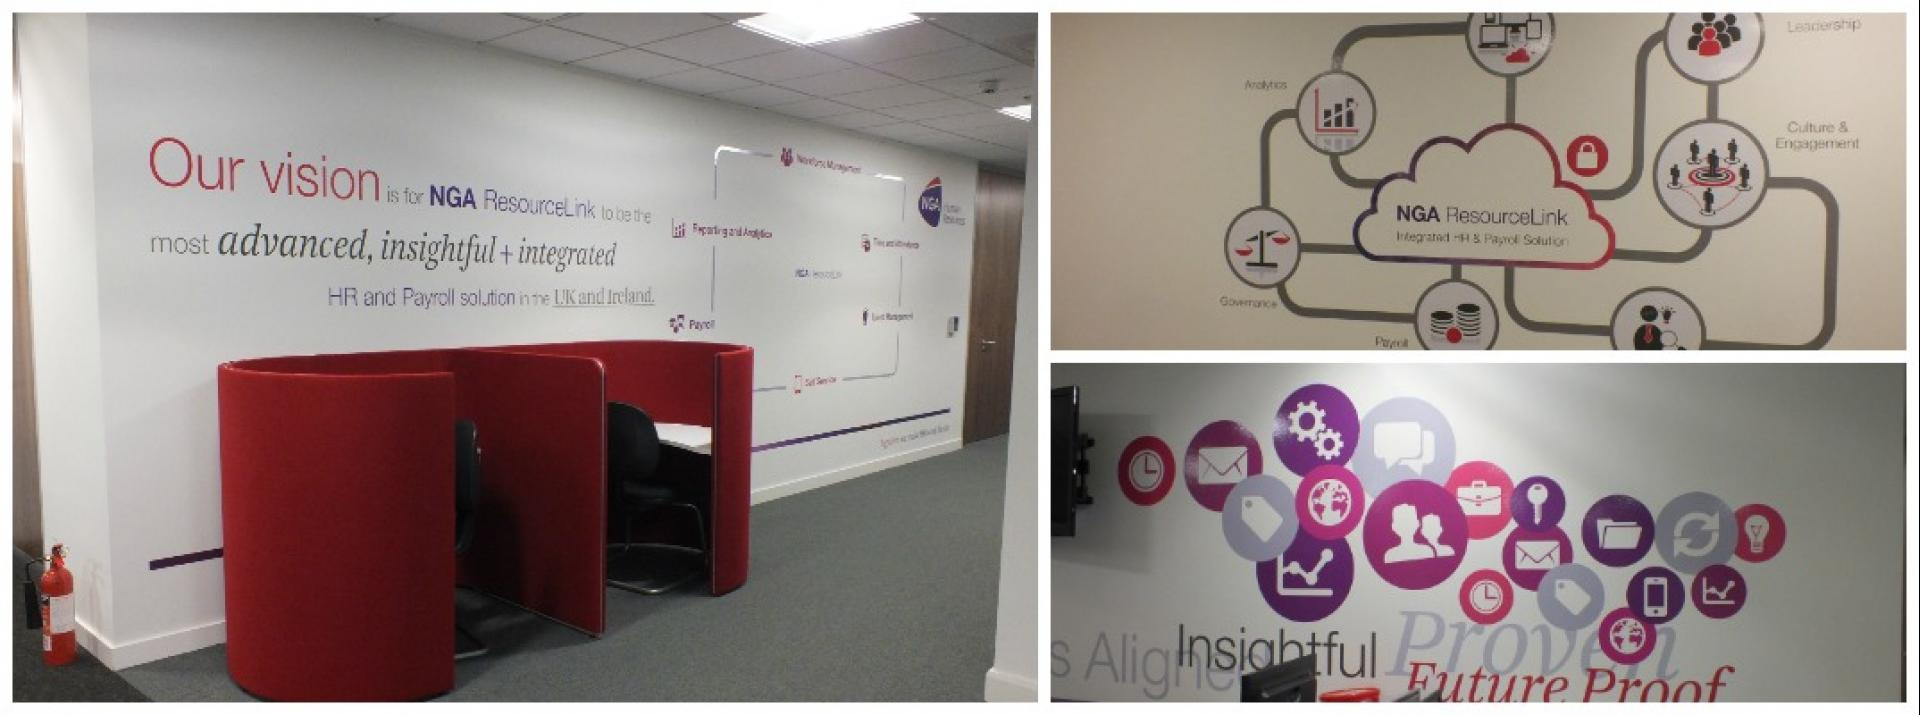 NGA HR wall display graphics